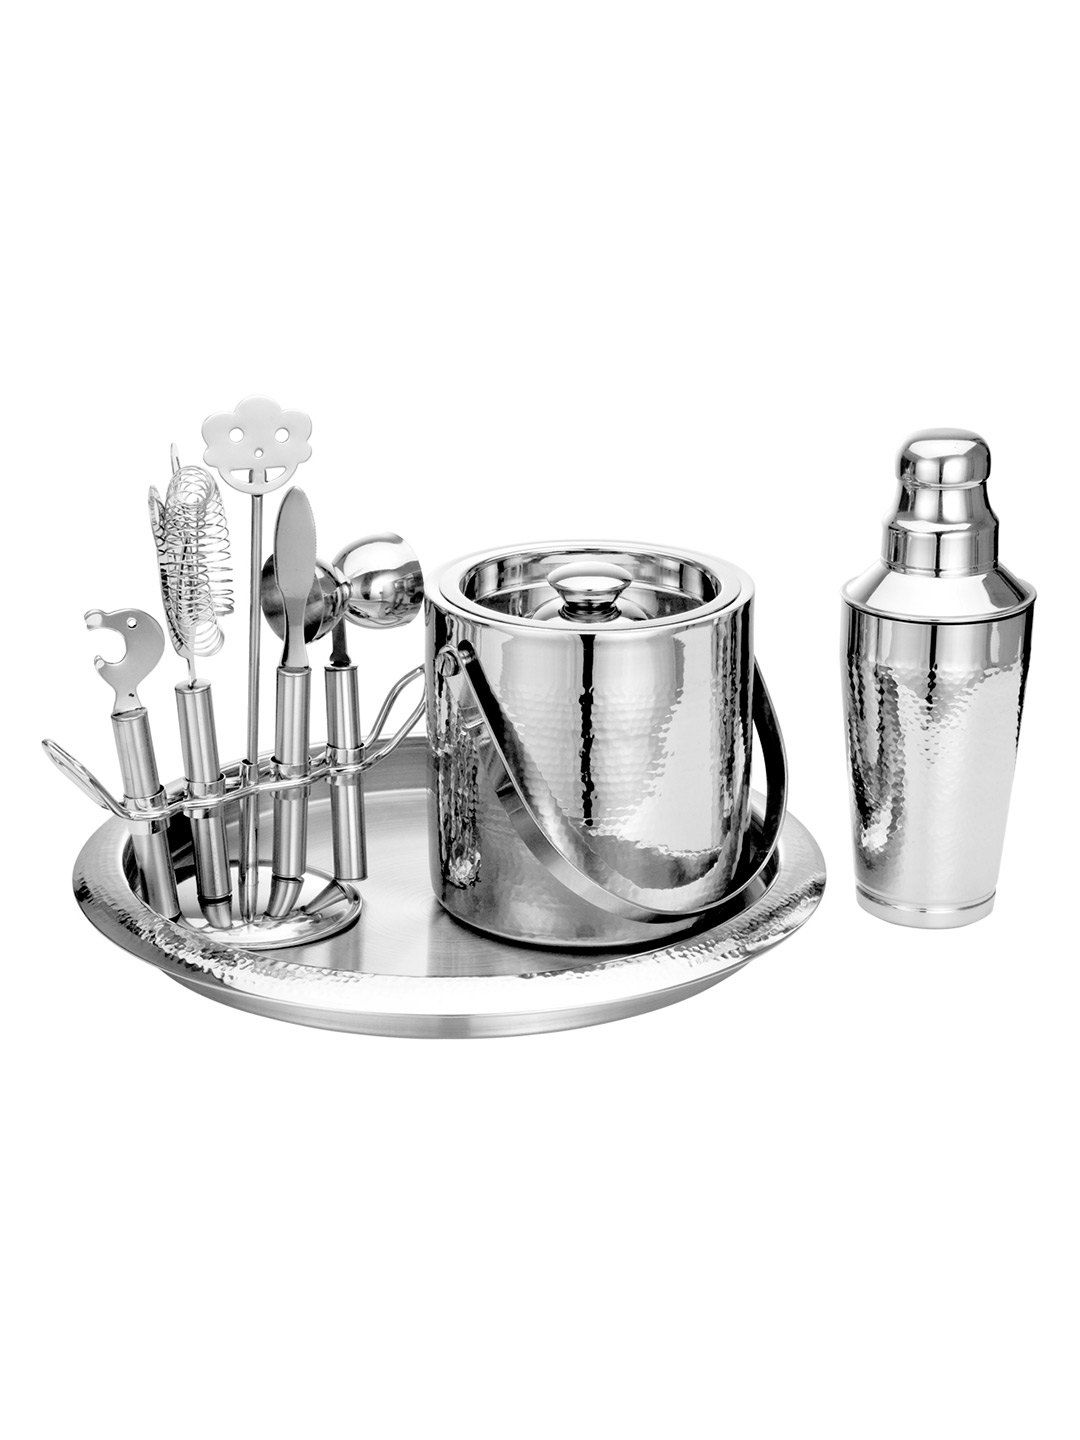 Bar/Tool Set (9 PC) by Godinger at Gilt